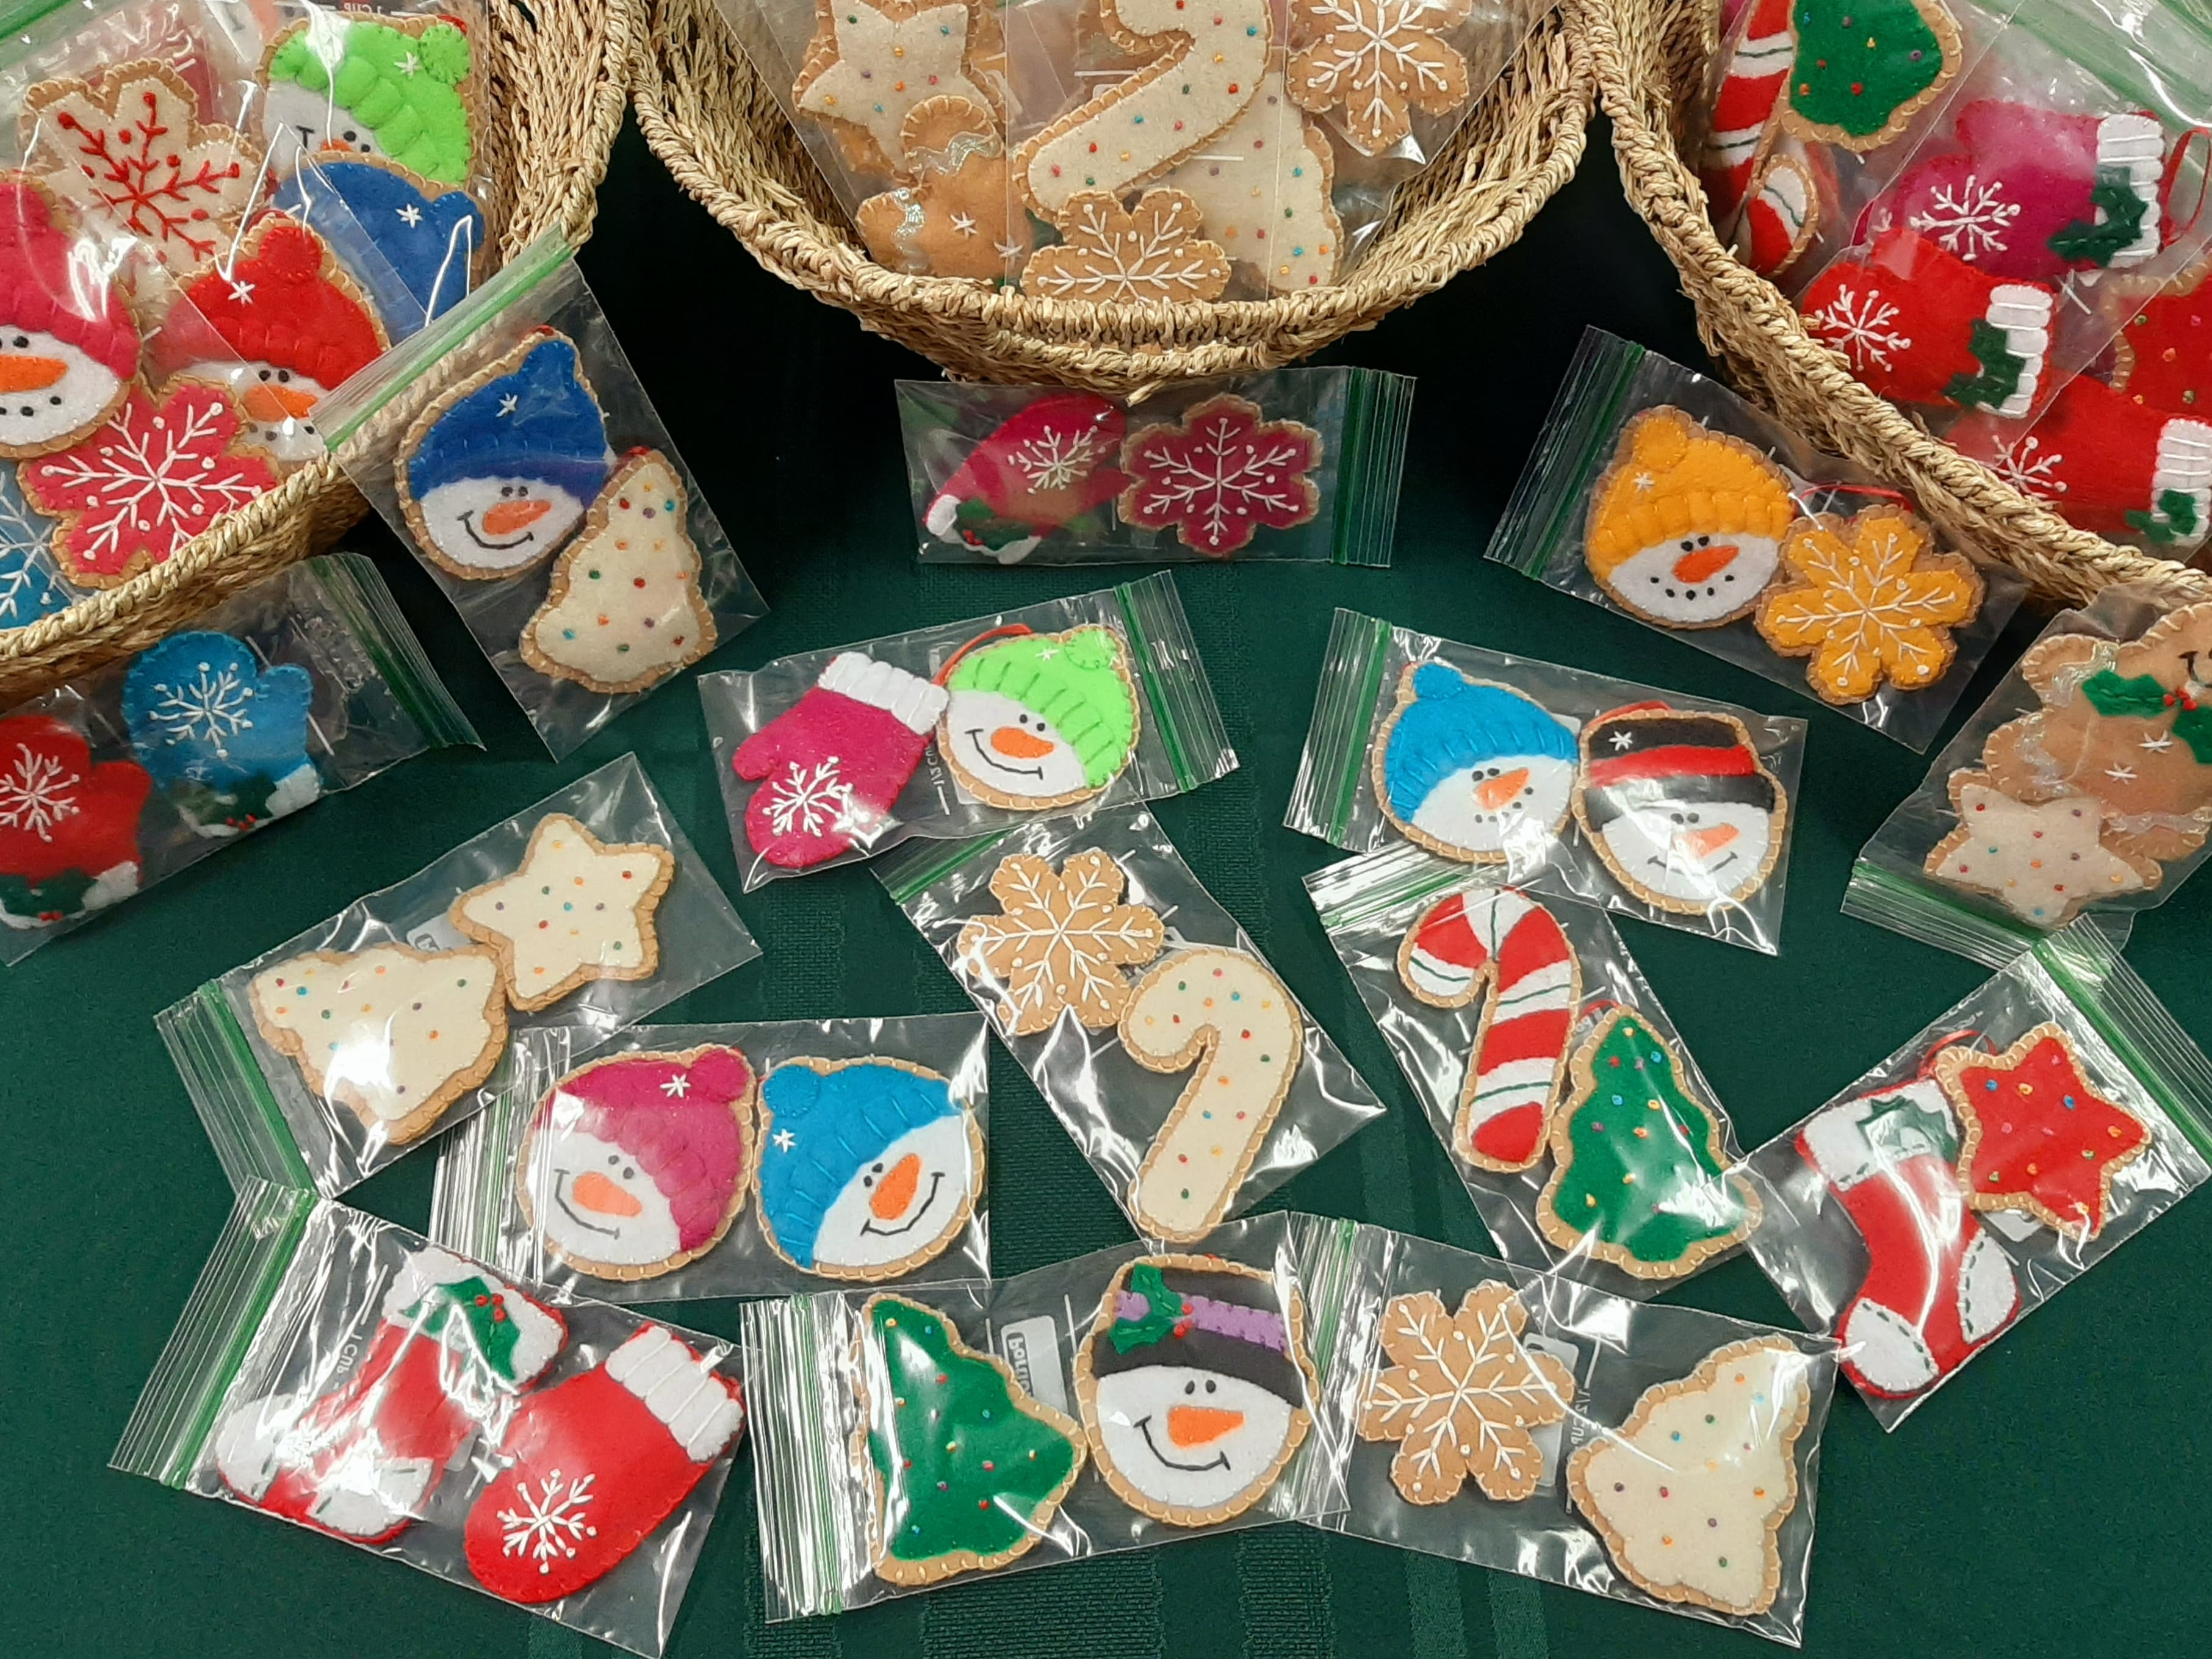 Christmas Ornaments - Butter Cookies (2)